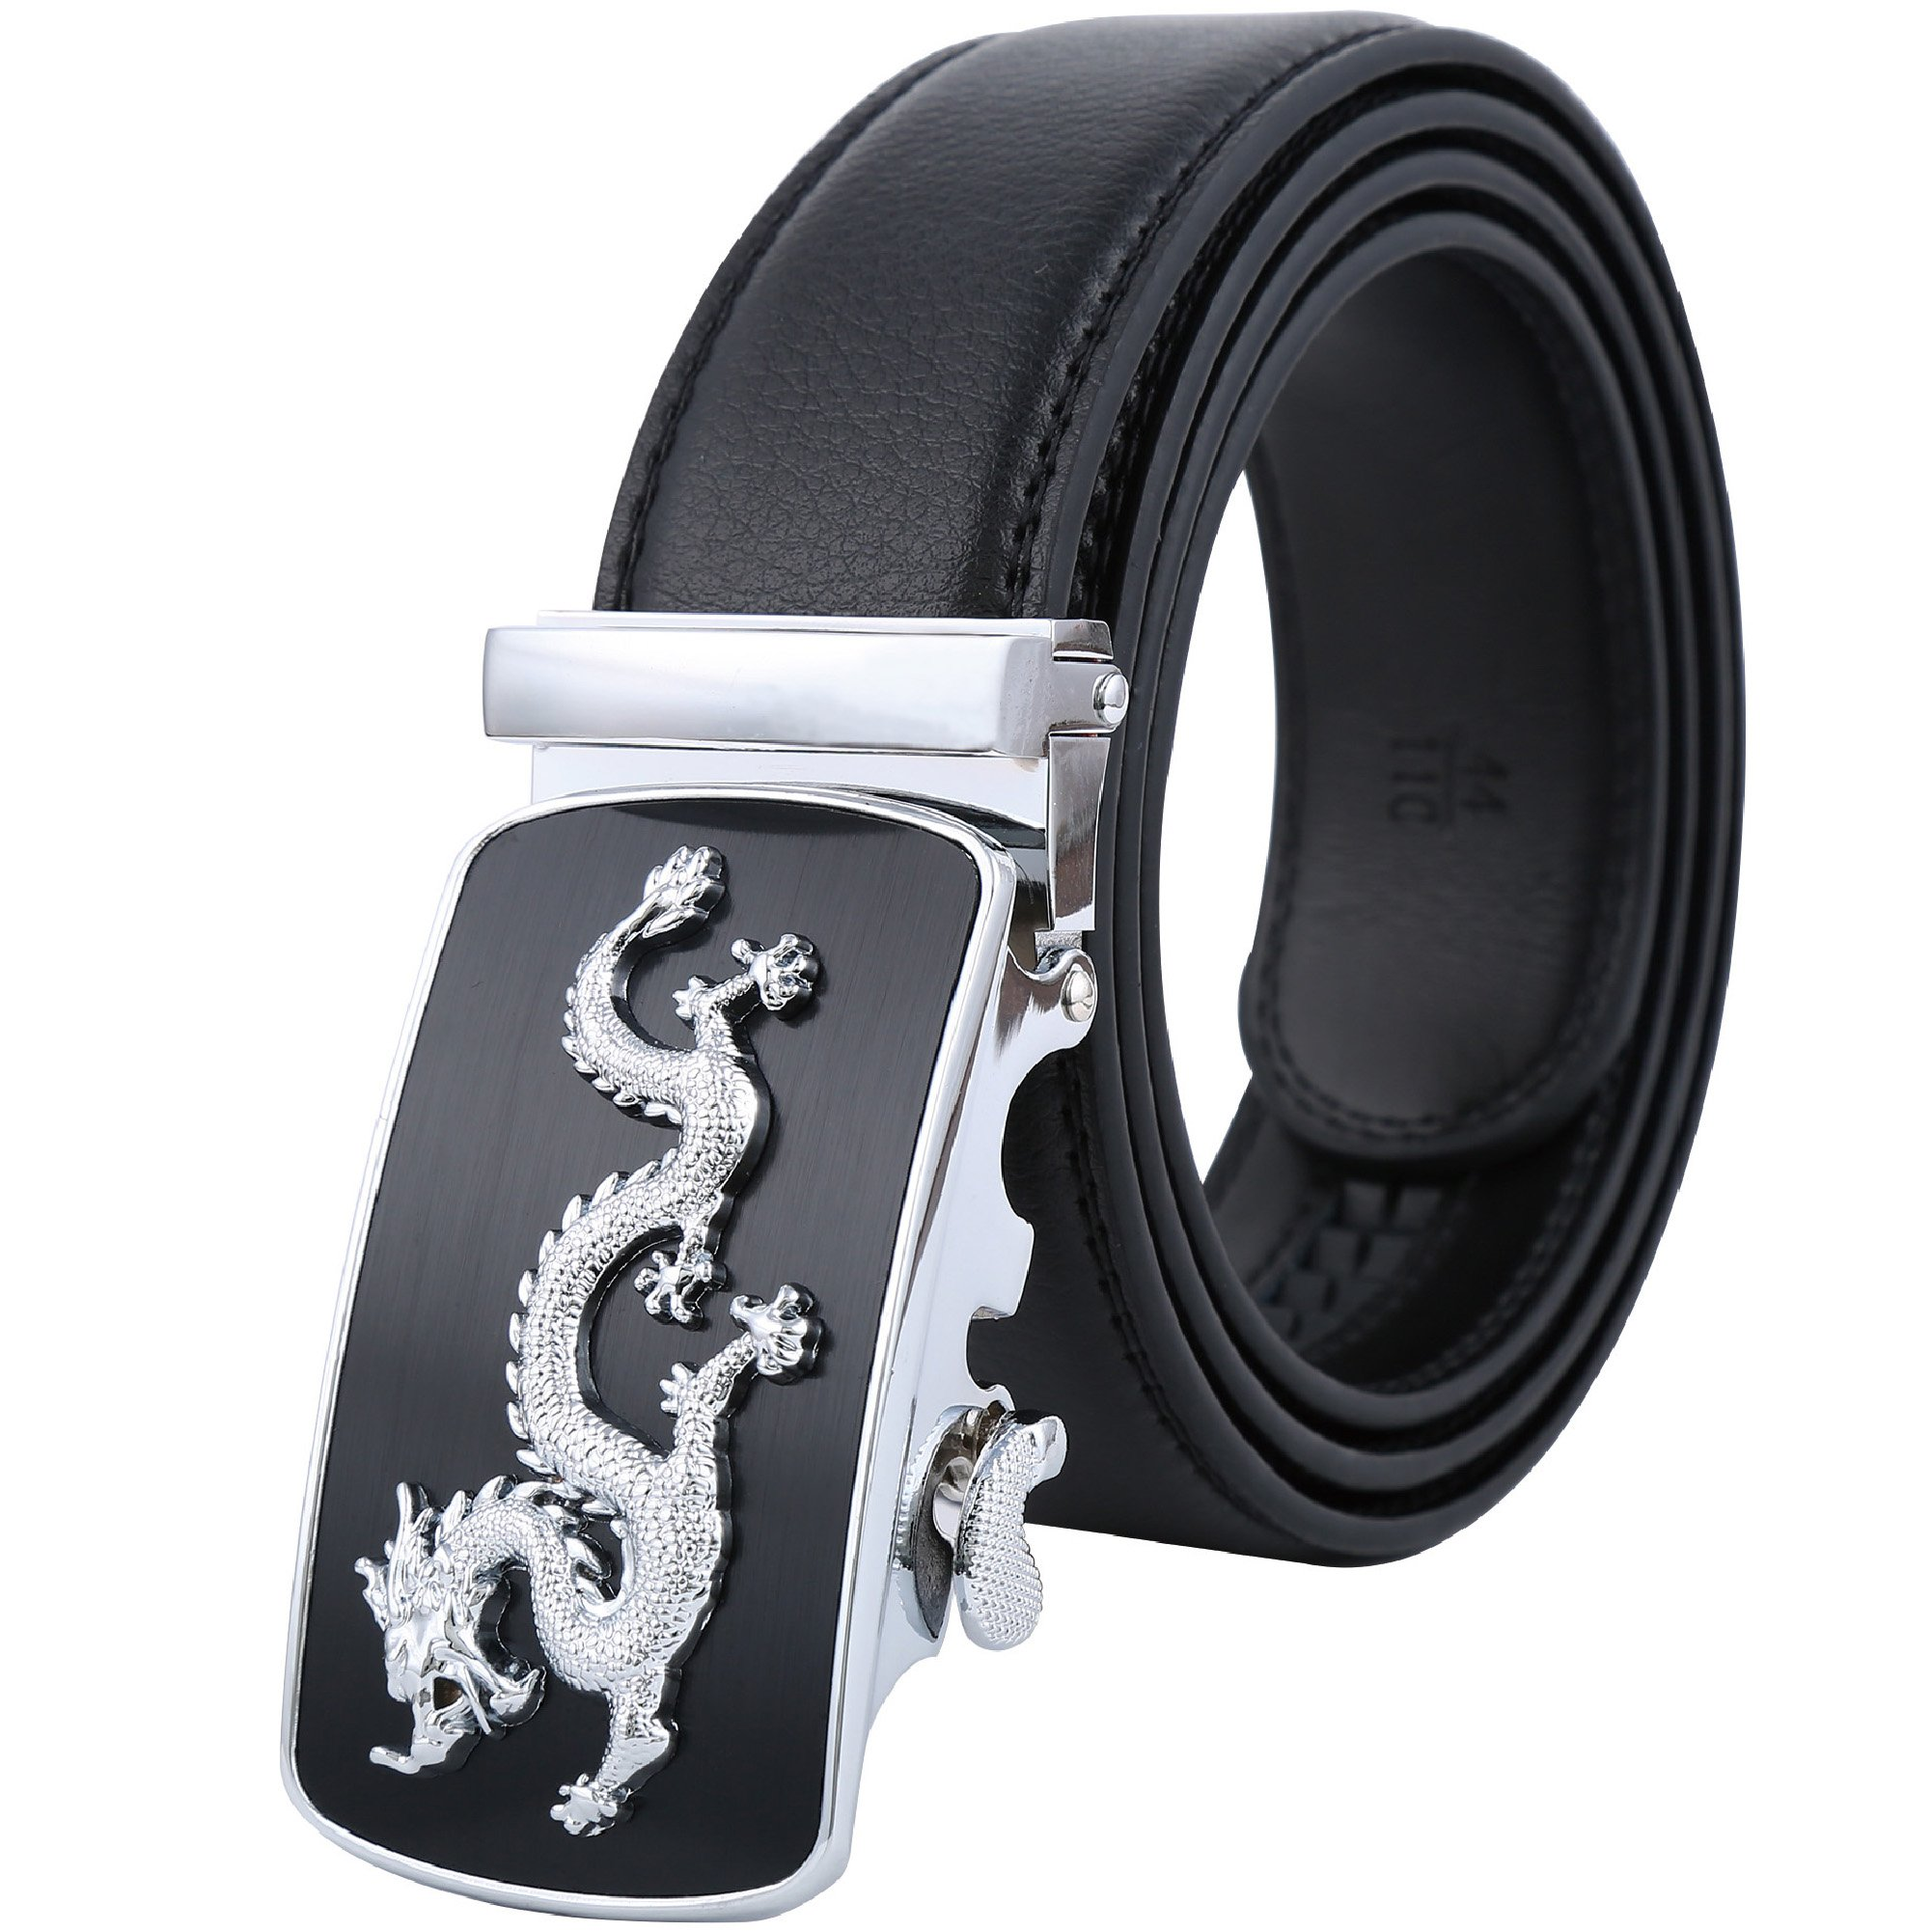 Tanpie Men's Leather Belt Automatic Alloy Buckle 35mm Ratchet Belt Gold and Silver Dragon (40-45in.(130cm), Silver)